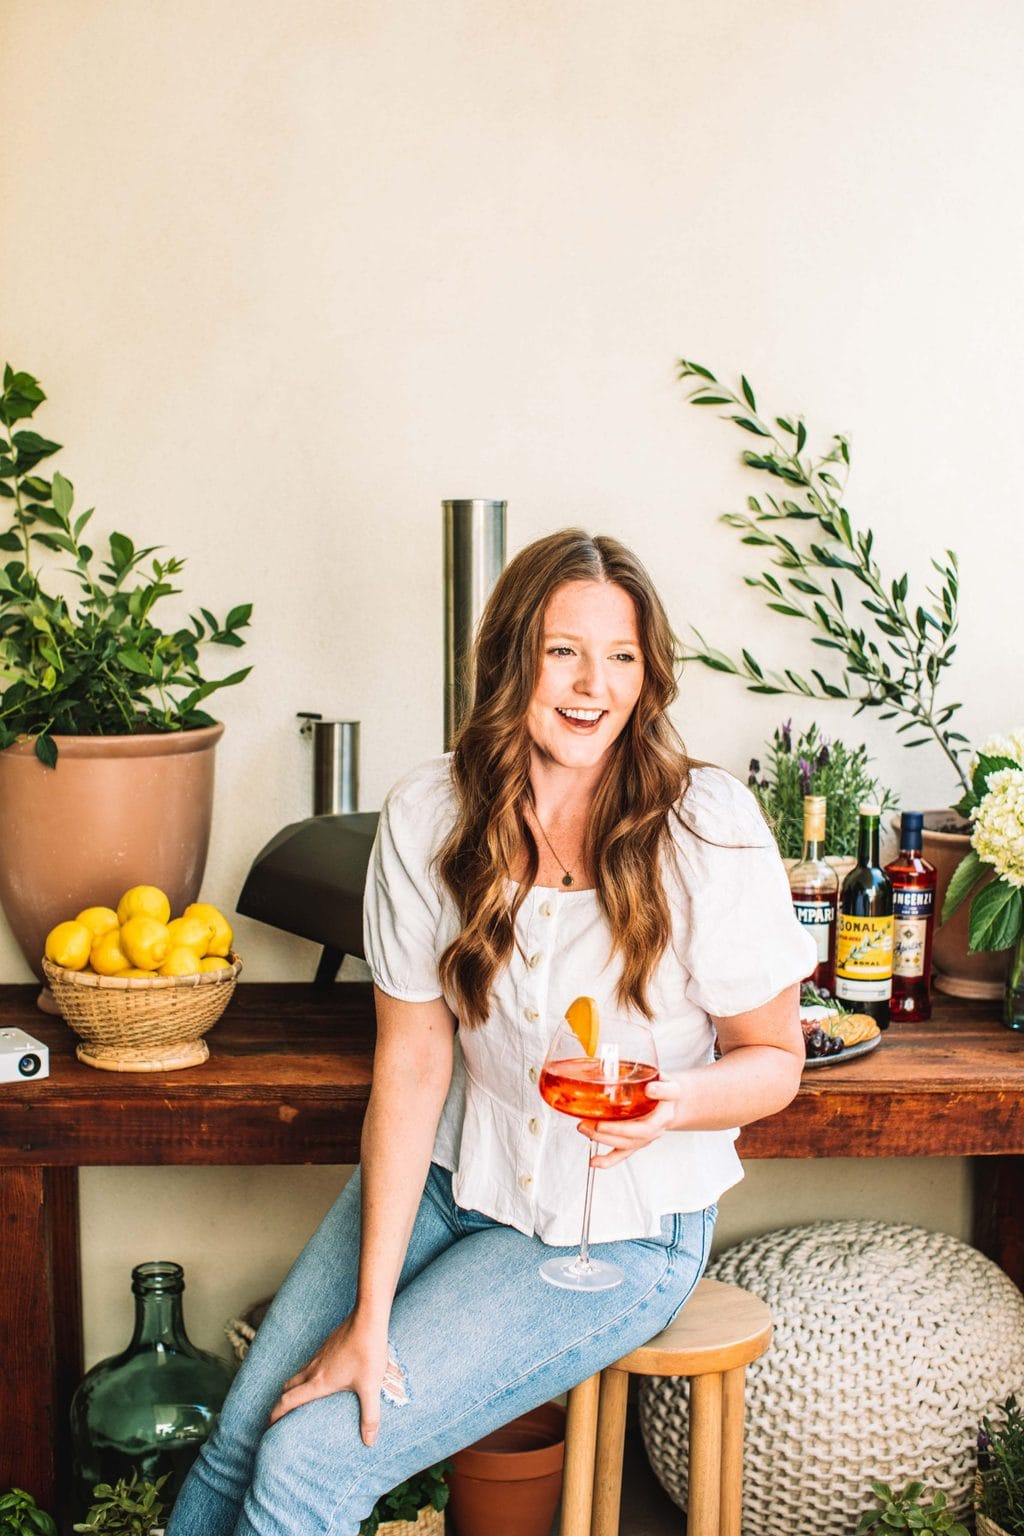 A girl sitting on a stool holding an aperol spritz.